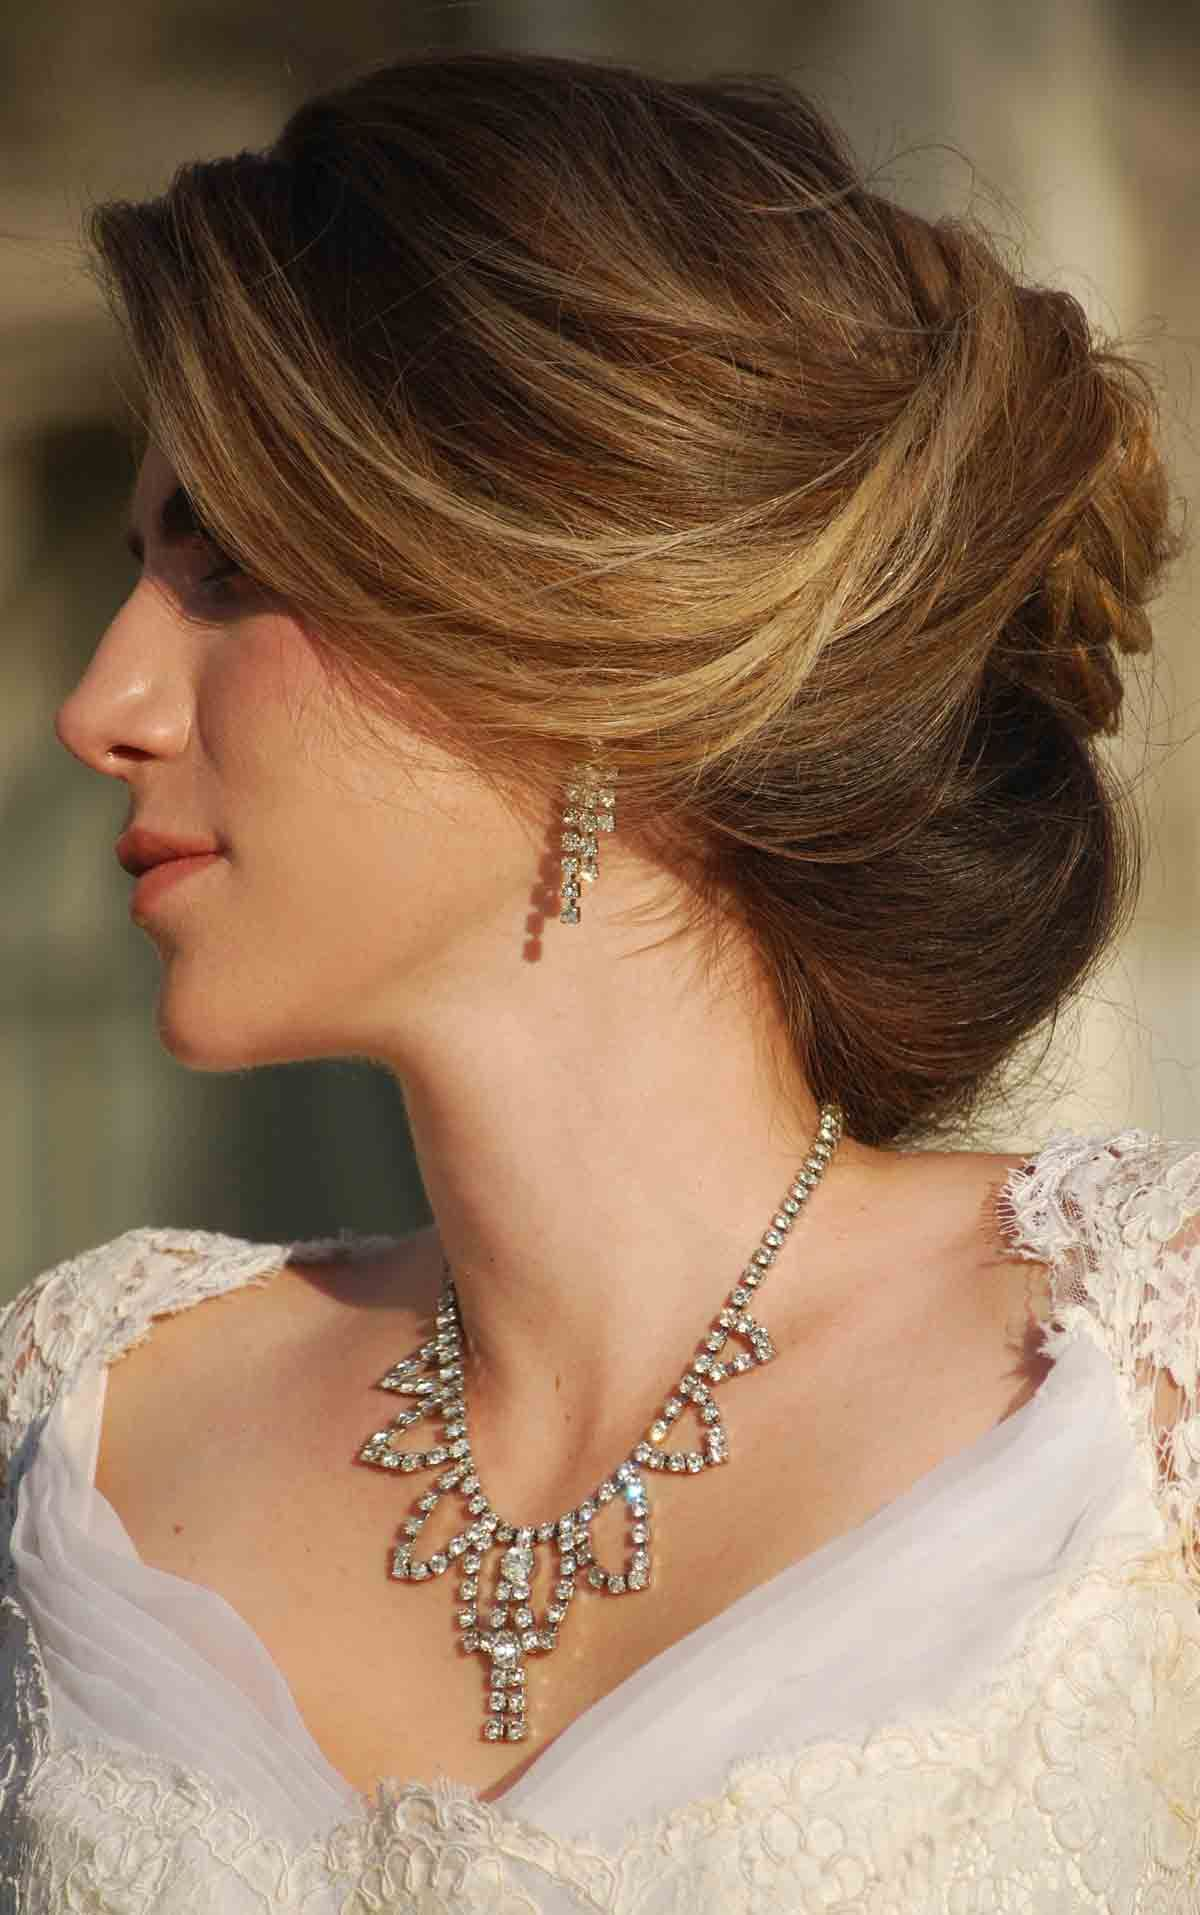 hair styles for mother of the bride | mother-of-bride-hairstyle-1